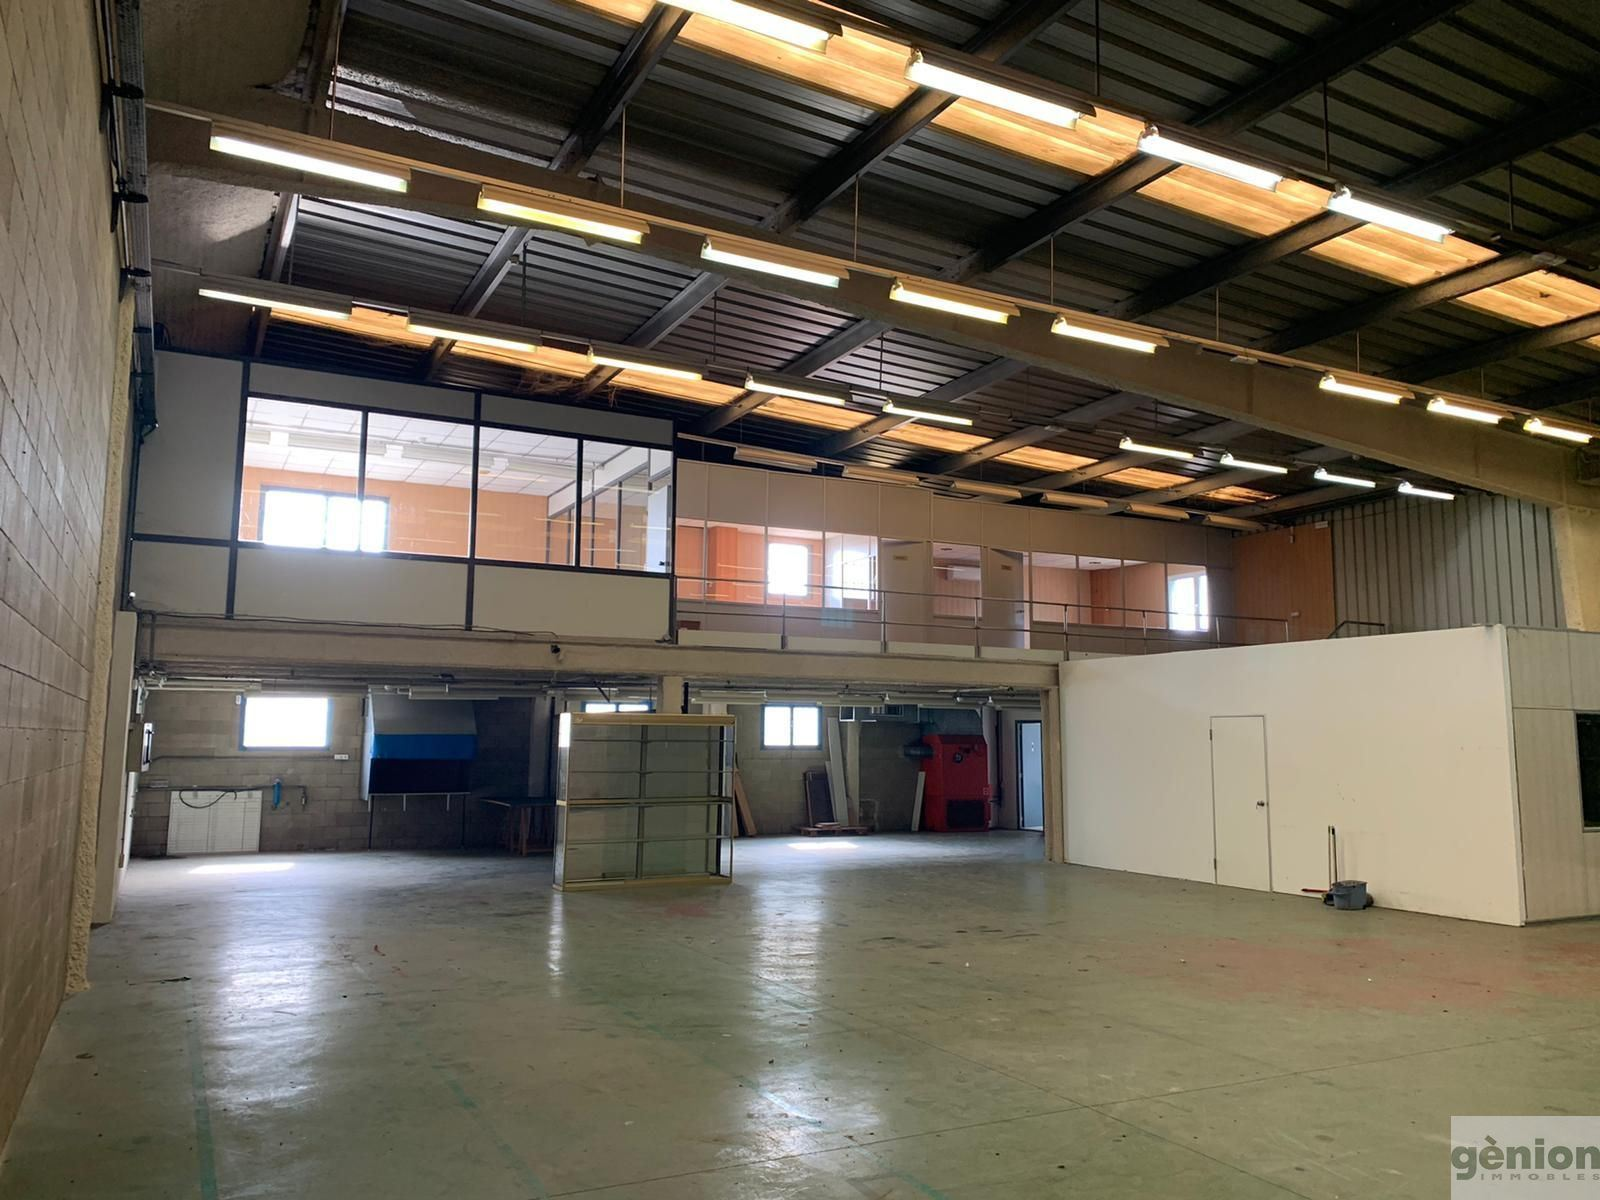 489 M² INDUSTRIAL BUILDING TO LEASE IN VILABLAREIX, NEXT TO GIRONA